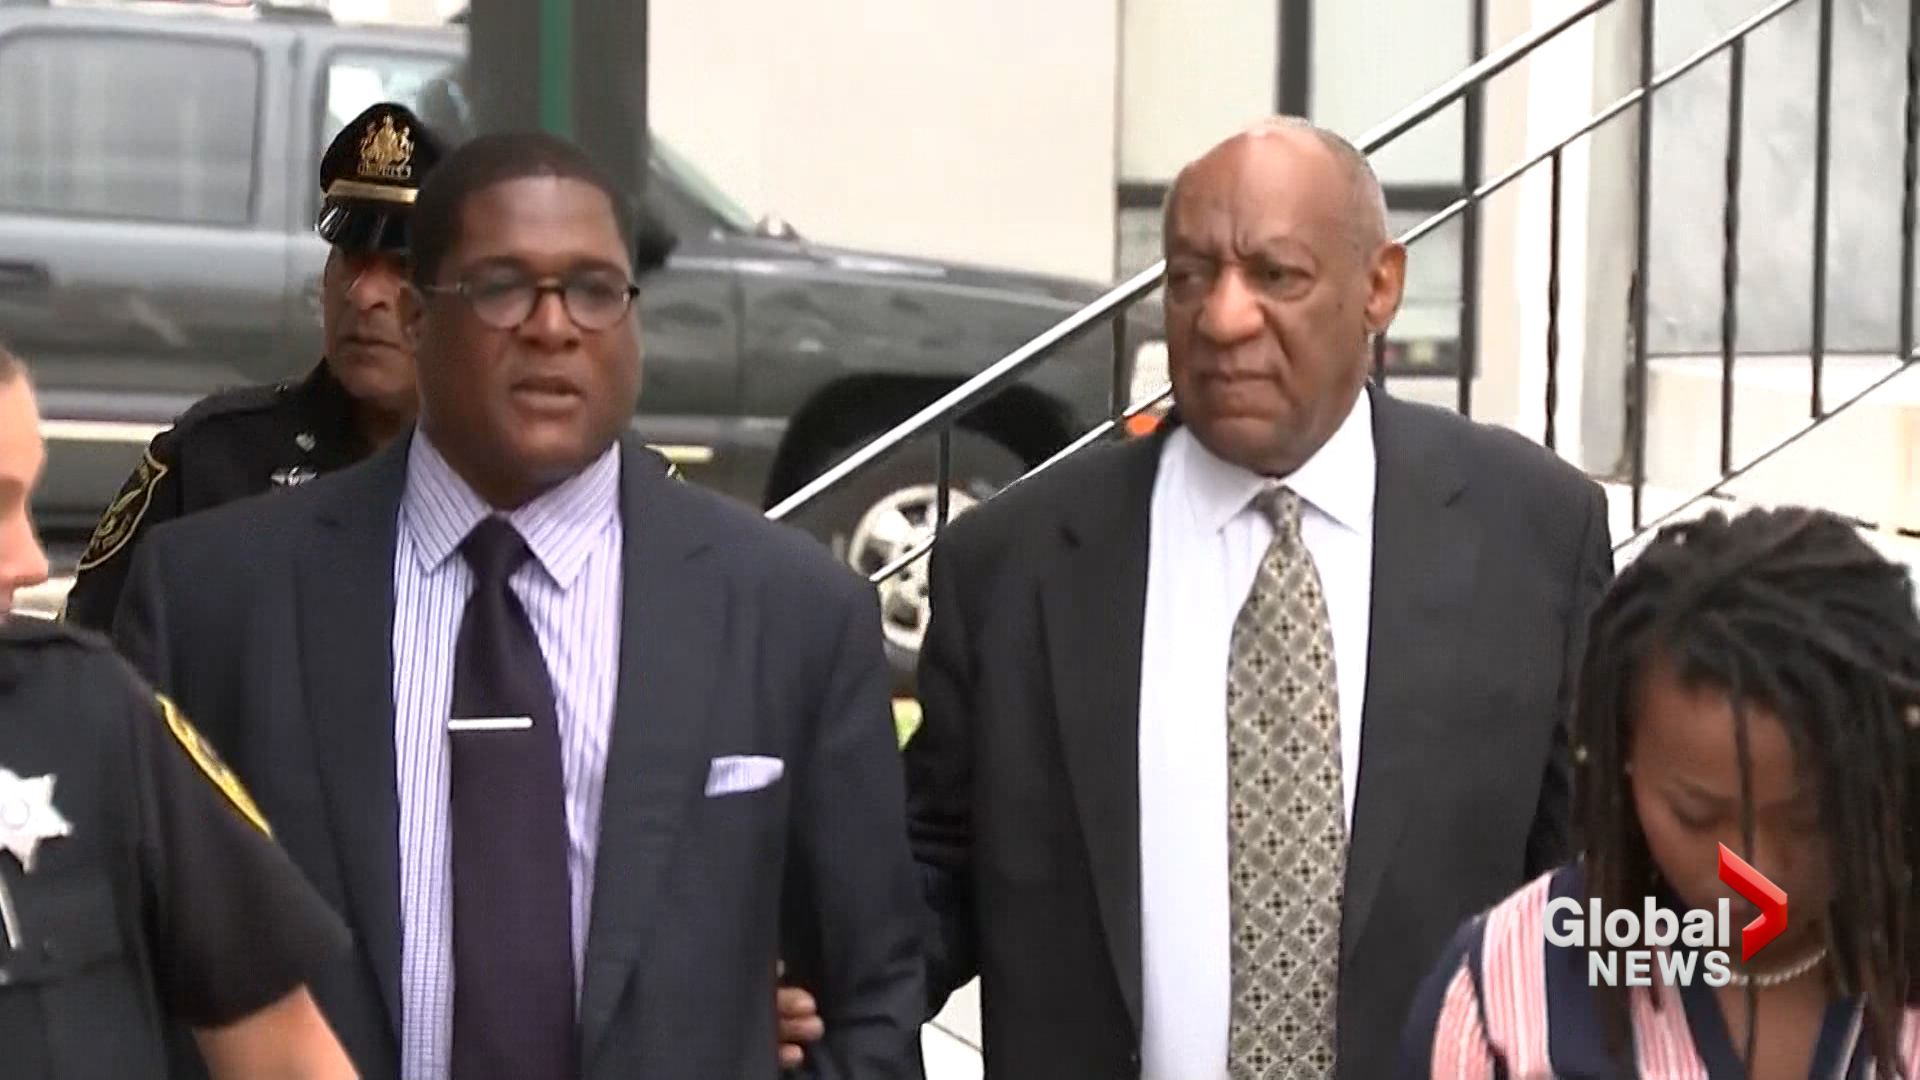 Deadlock in Bill Cosby trial, jury told to keep at it